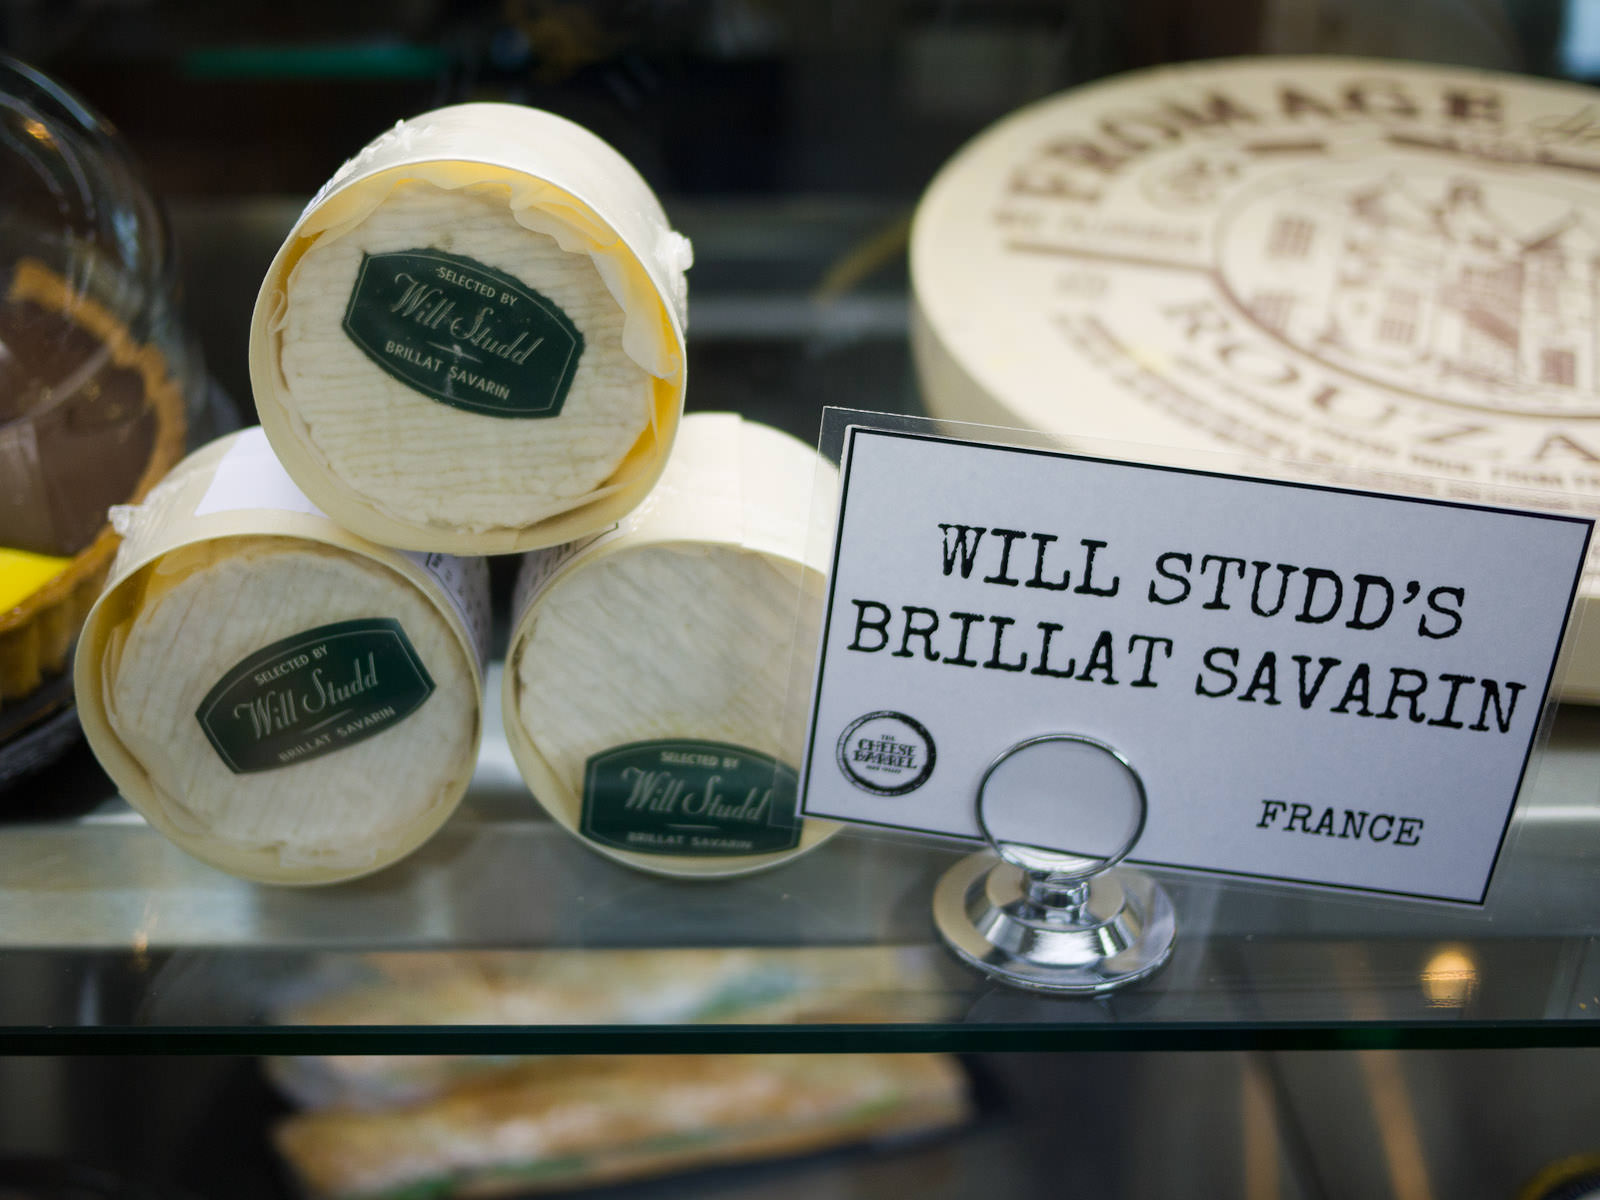 Will Studd's Brillat Savarin